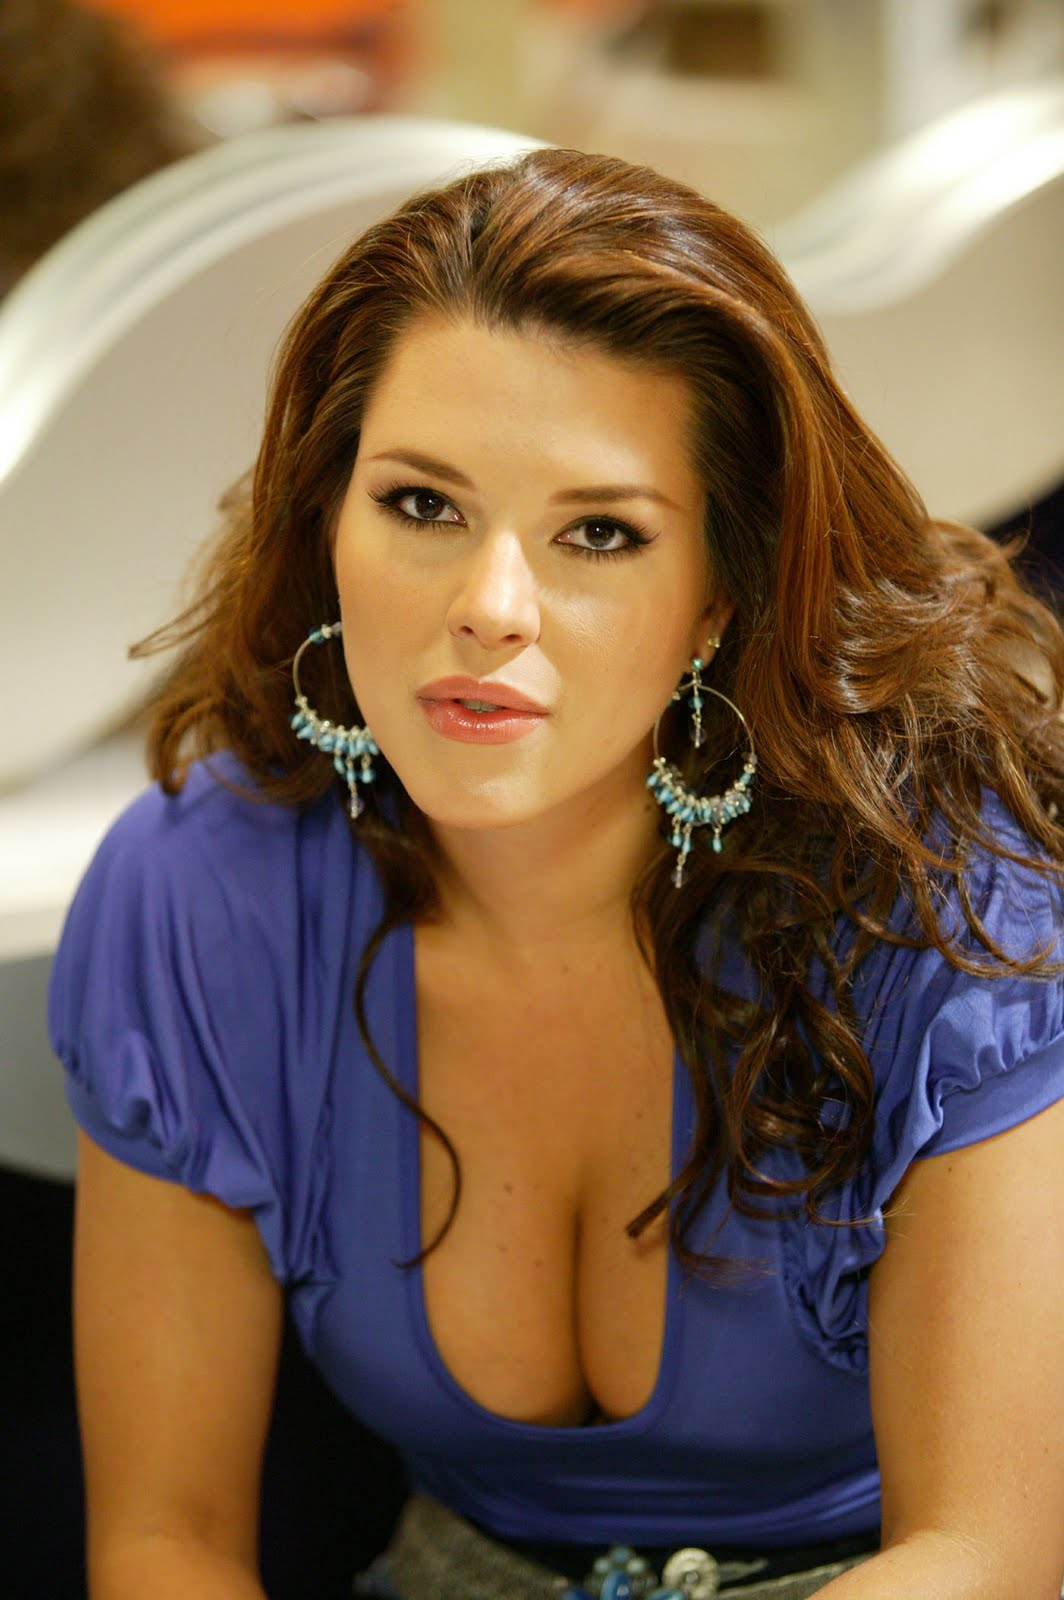 Alicia Machado nudes (27 foto and video), Ass, Is a cute, Selfie, braless 2020